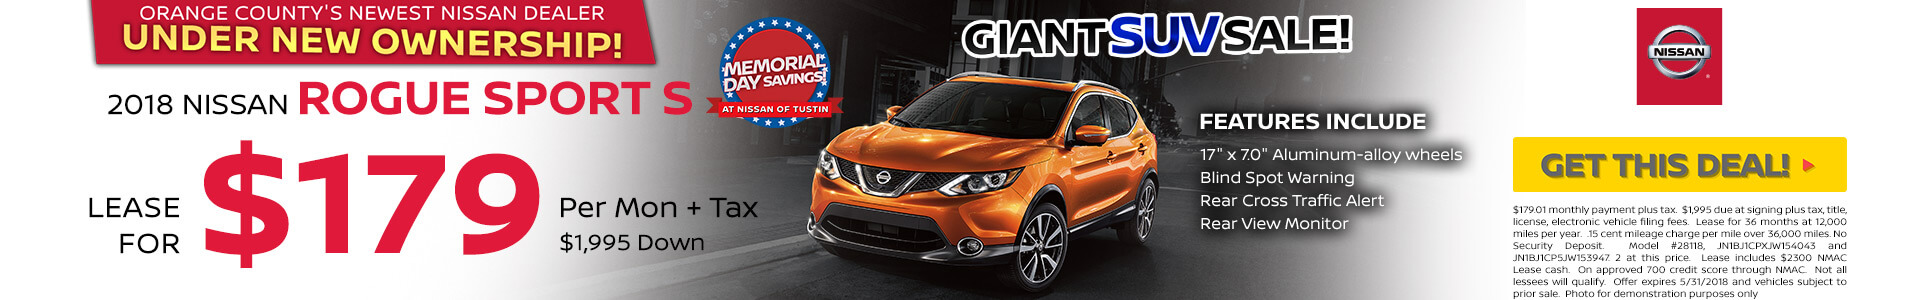 2018 Nissan Rogue Sport $179 Lease